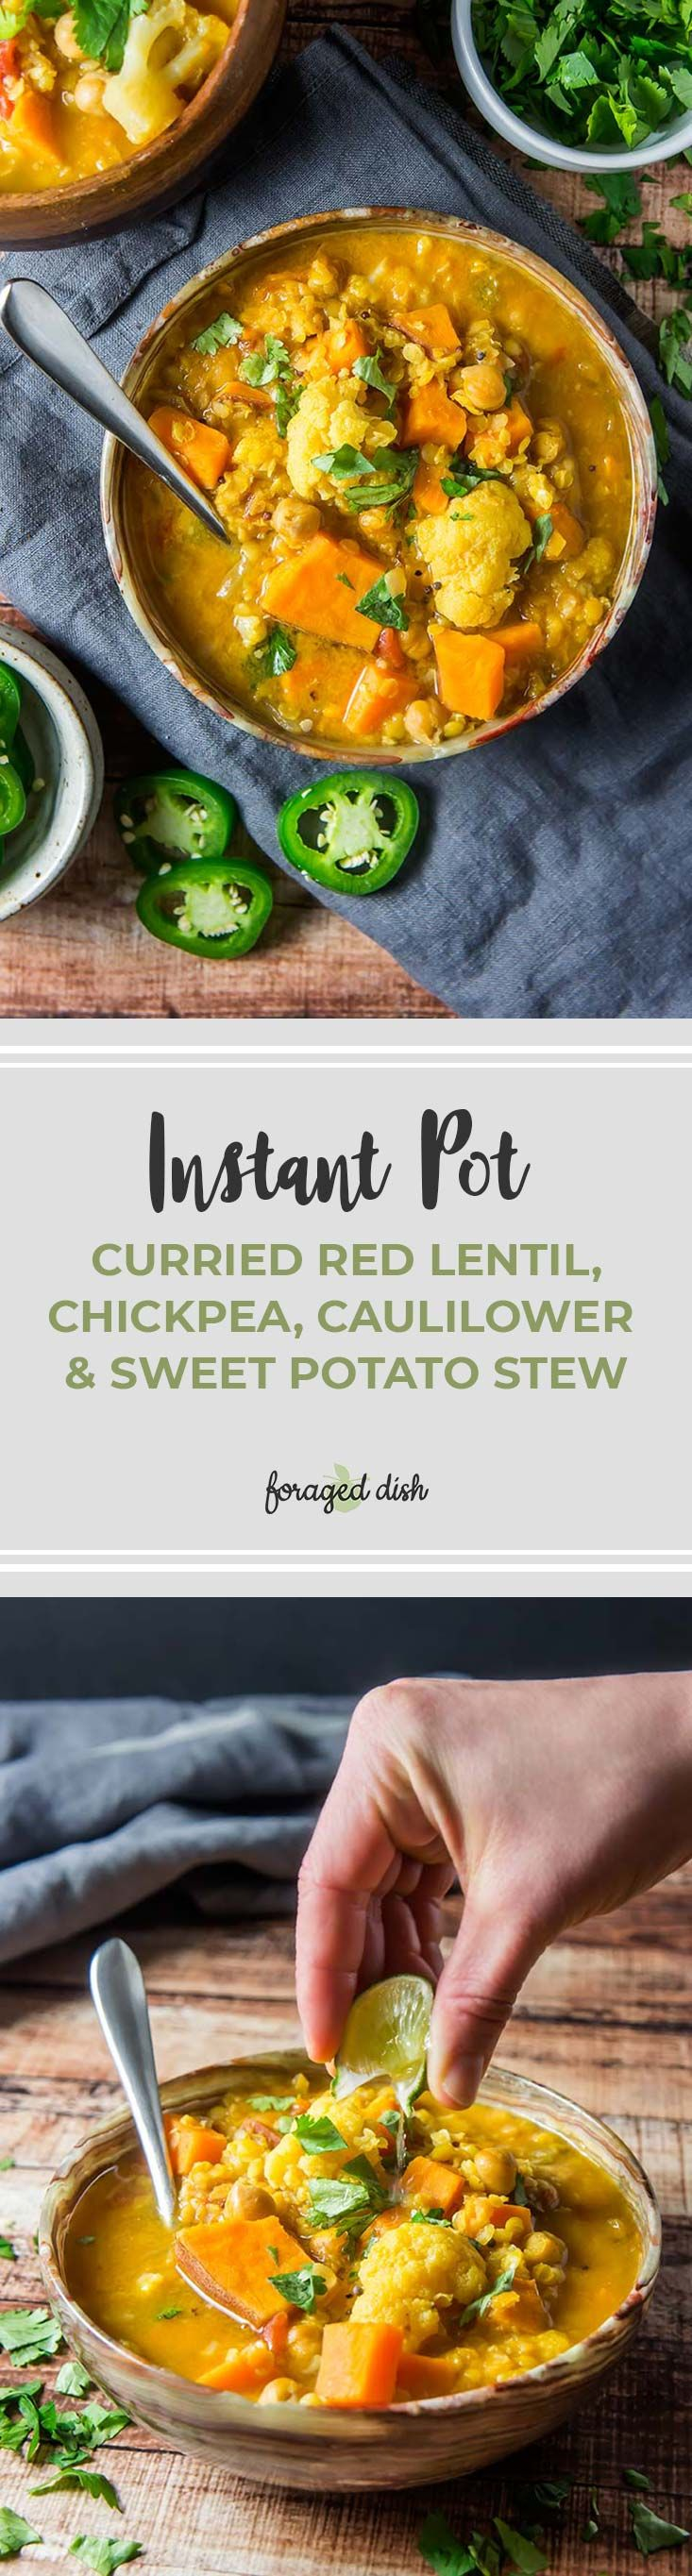 Favorite Curried Red Lentil & Chickpea Stew with Cauliflower & Sweet Potato